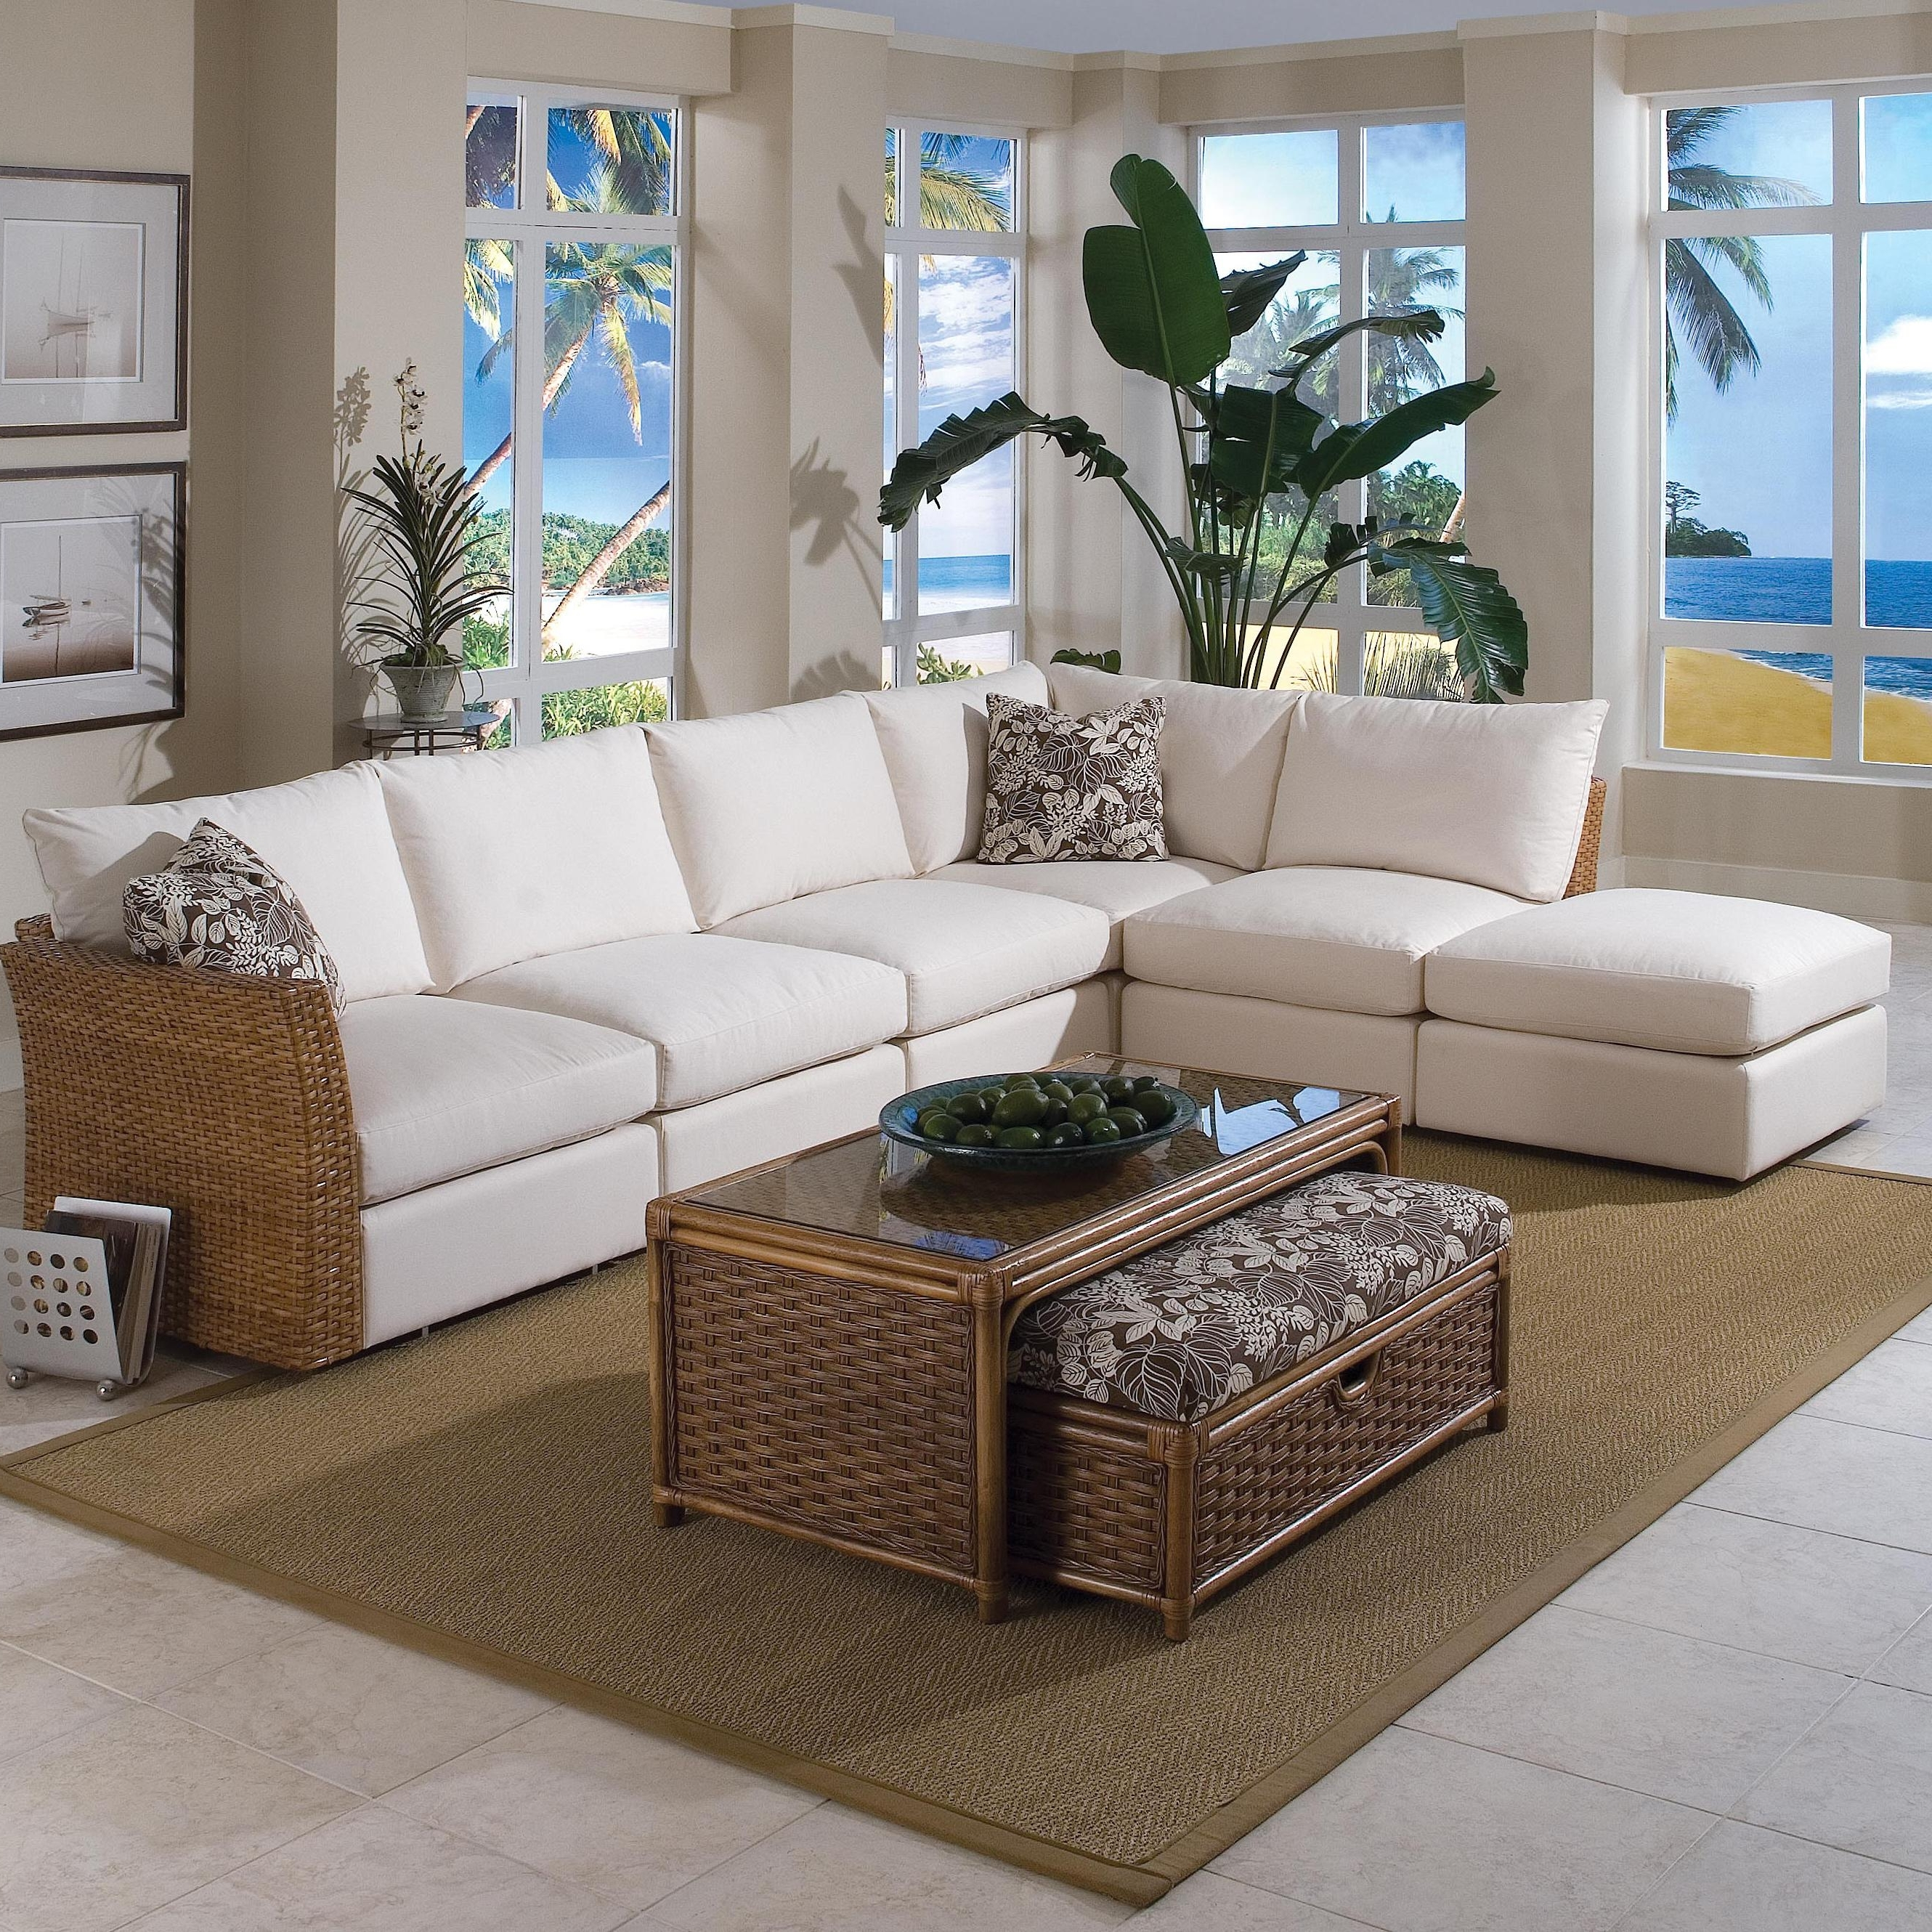 Well Liked Johnson City Tn Sectional Sofas Regarding Braxton Culler Grand Water Point Tropical Sectional Sofa With Two (View 20 of 20)